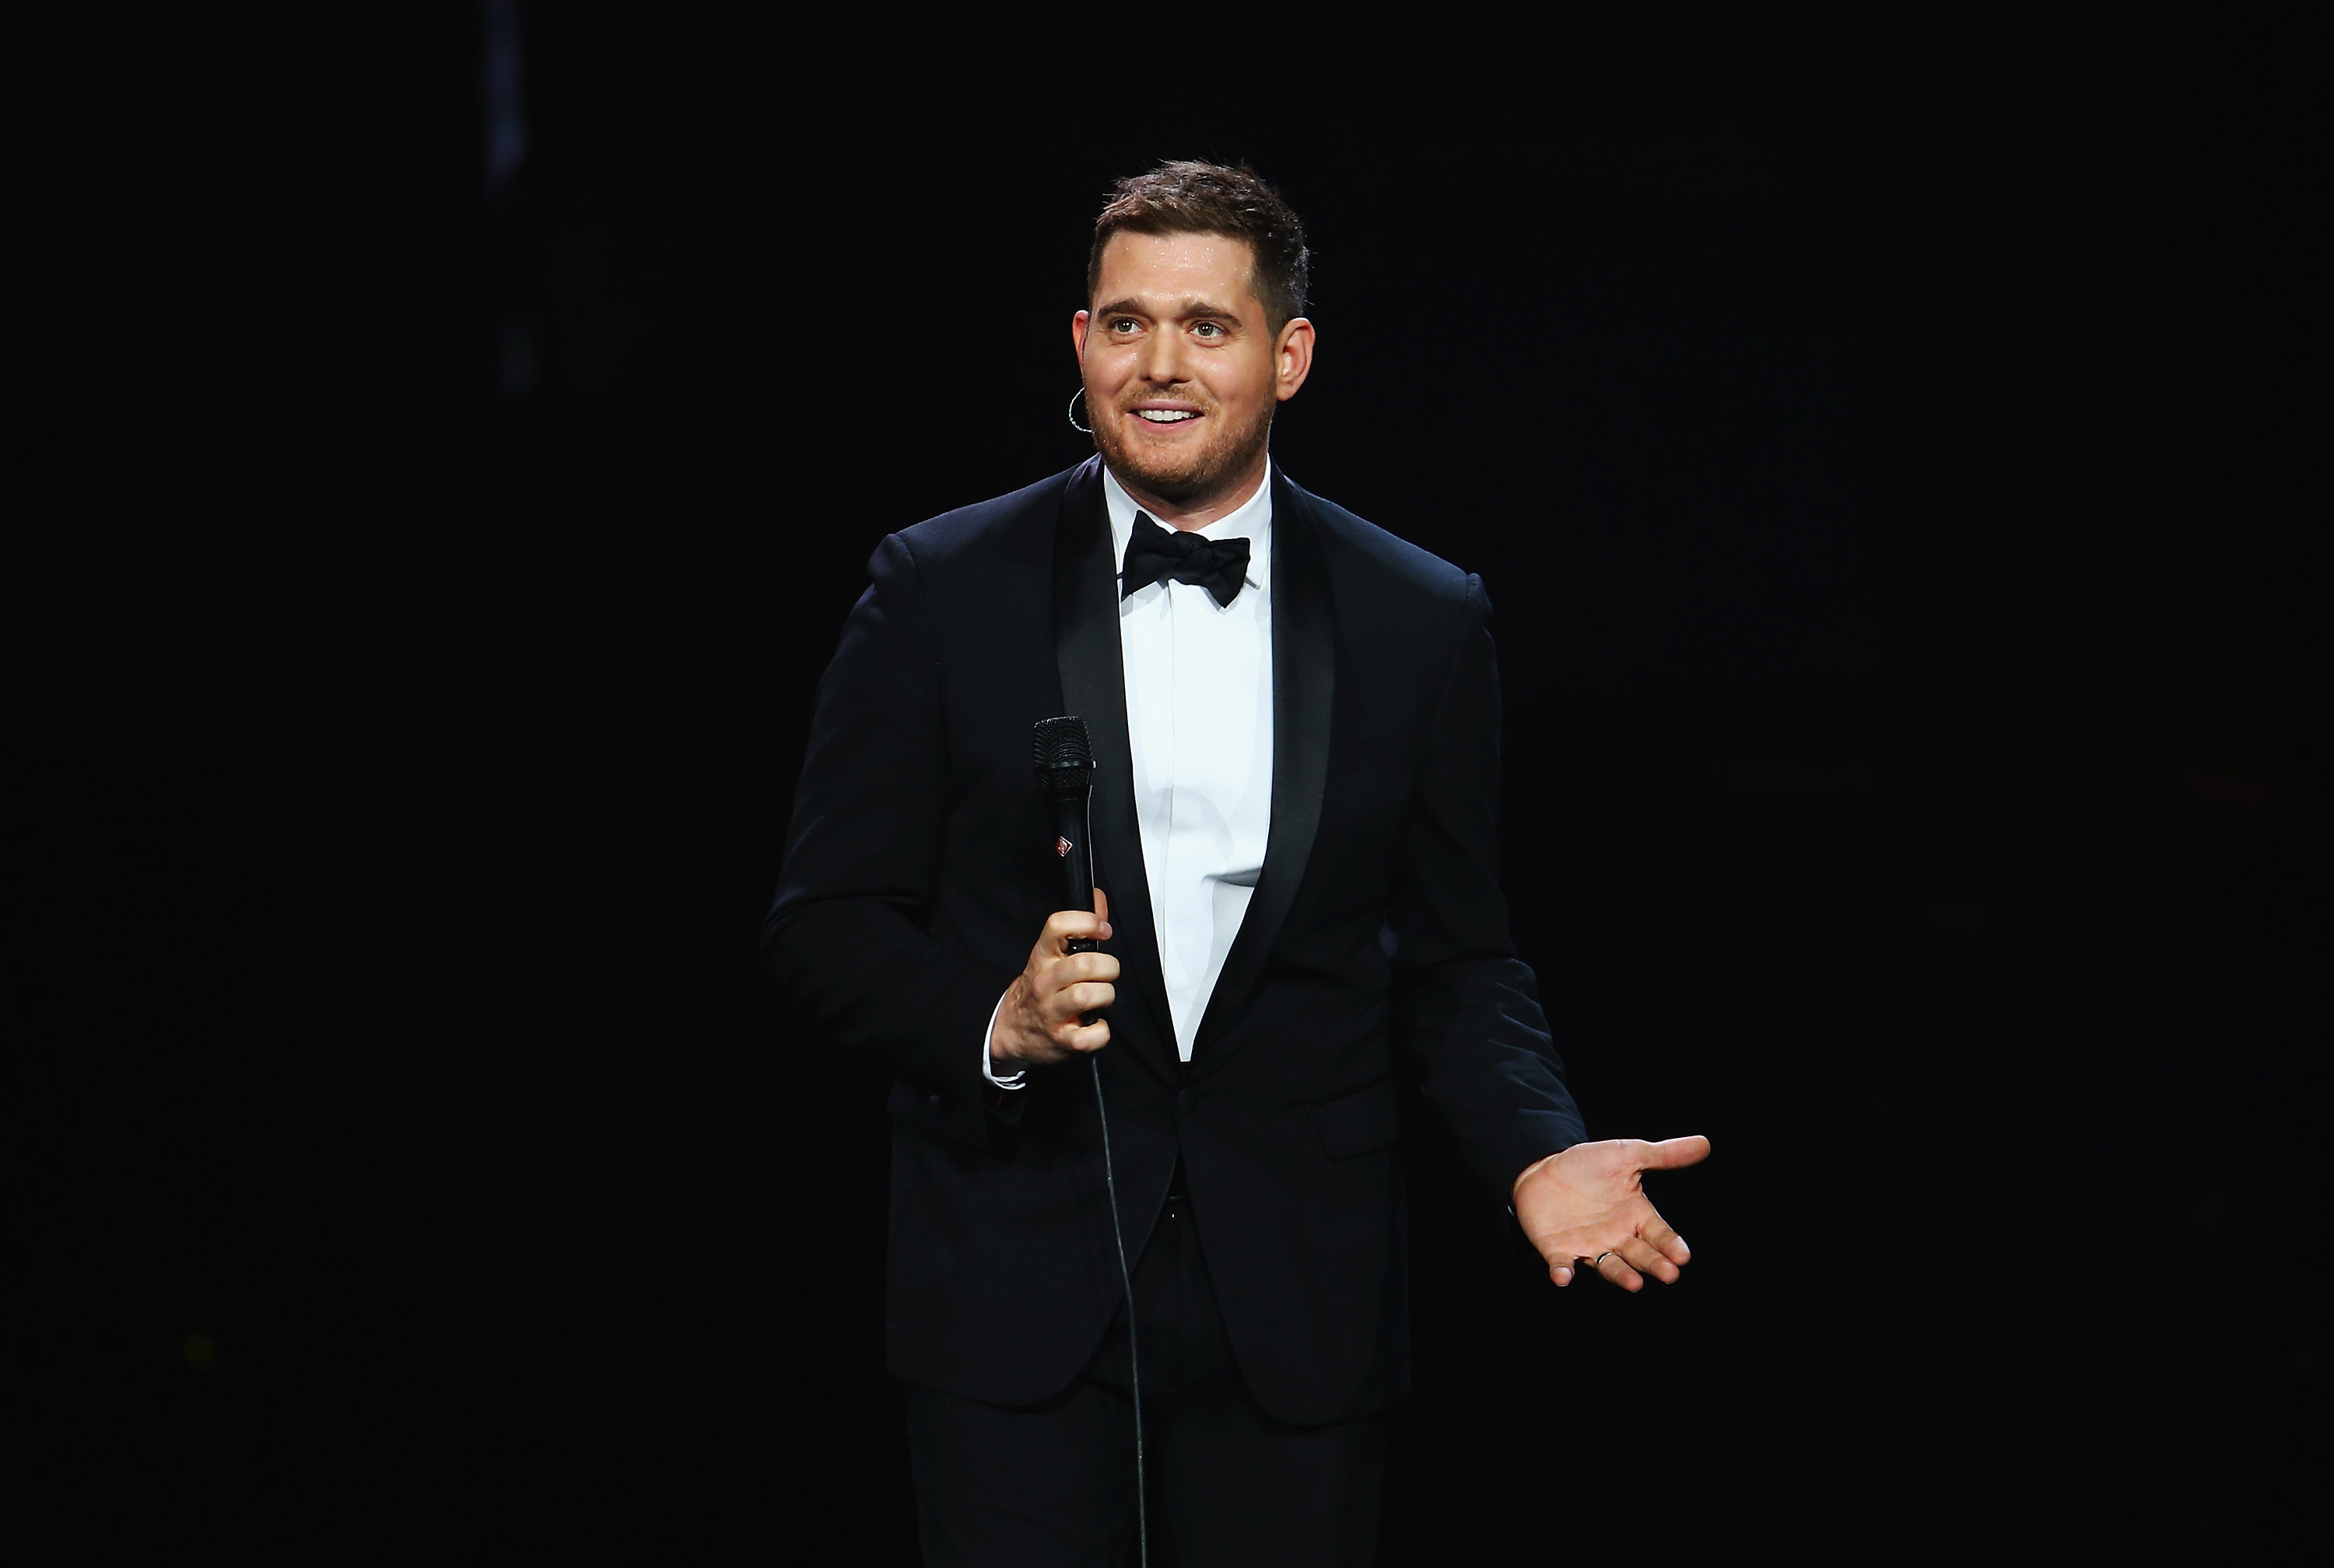 Michael Buble performs live at Allphones Arena on May 9, 2014 in Sydney.